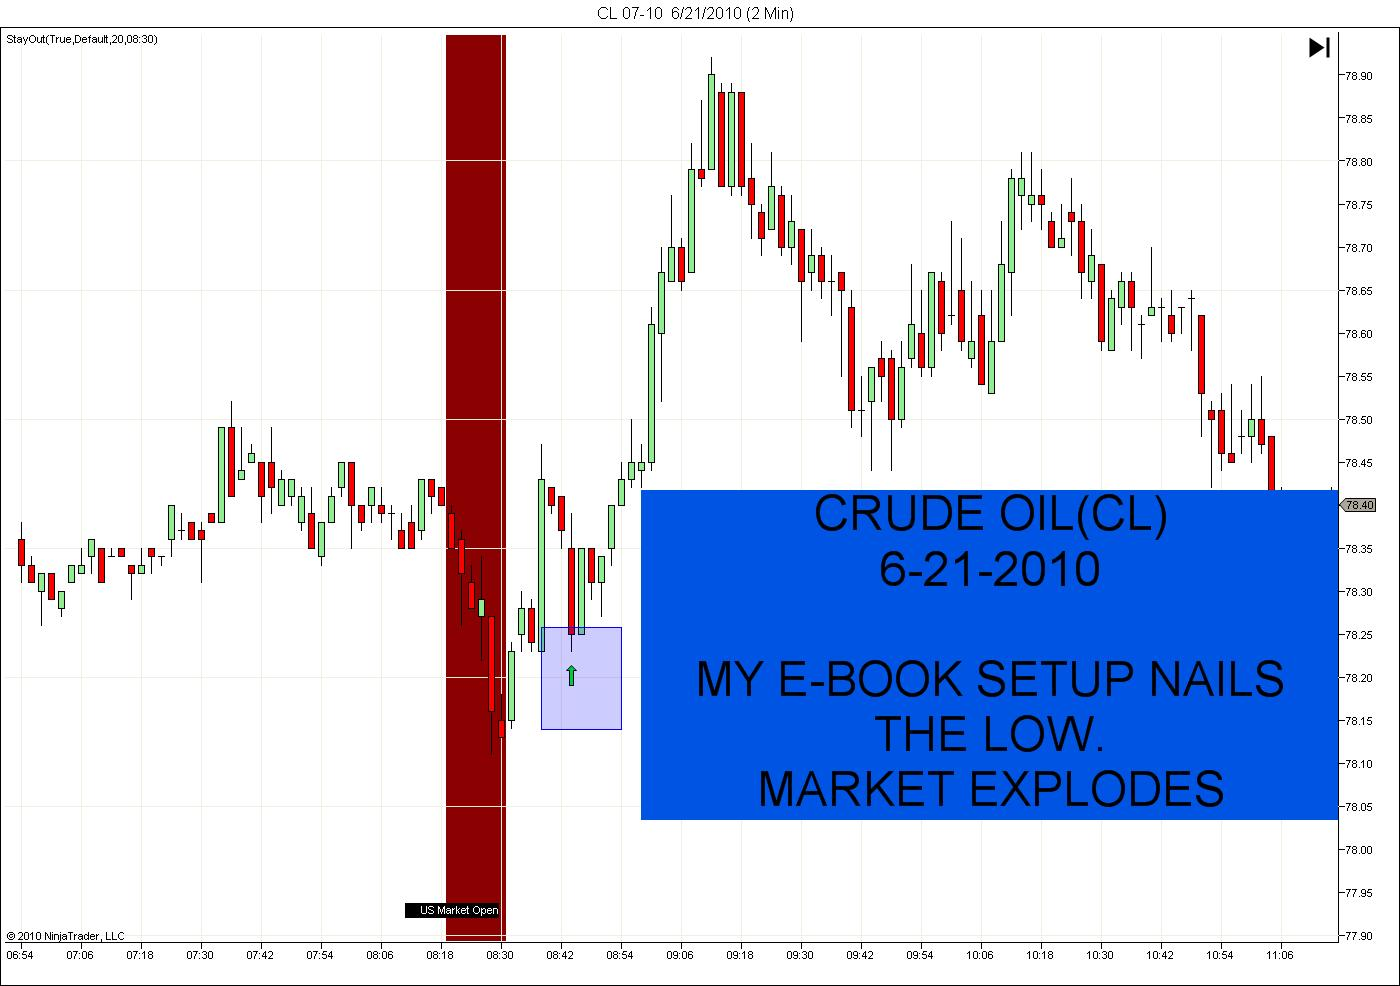 Trading in oil futures and options by sally clubley